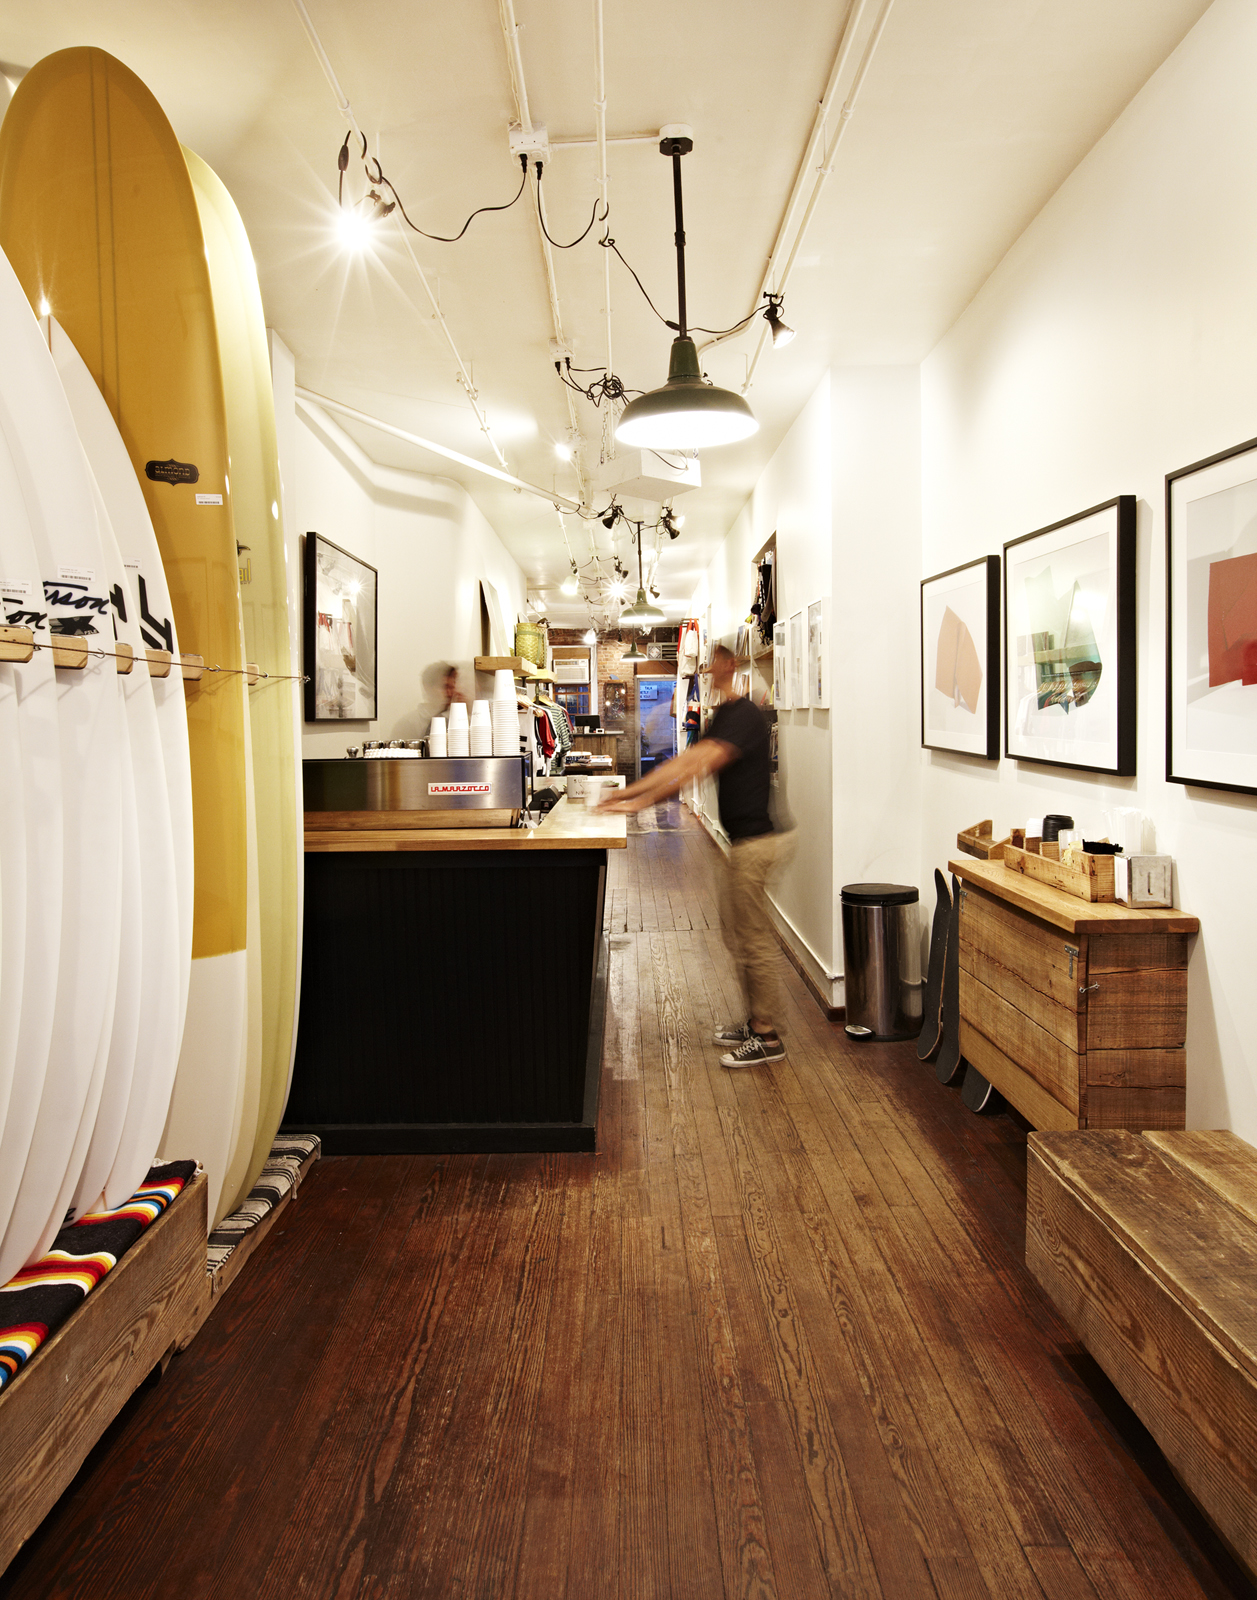 In addition to surfboards, wetsuits and beachwear, Saturdays sources and sells rare books, fine art and other surf-inspired lifestyle products. In summer 2011, the shop expanded their line of branded t-shirts to include a collection of oxford shirts, boar